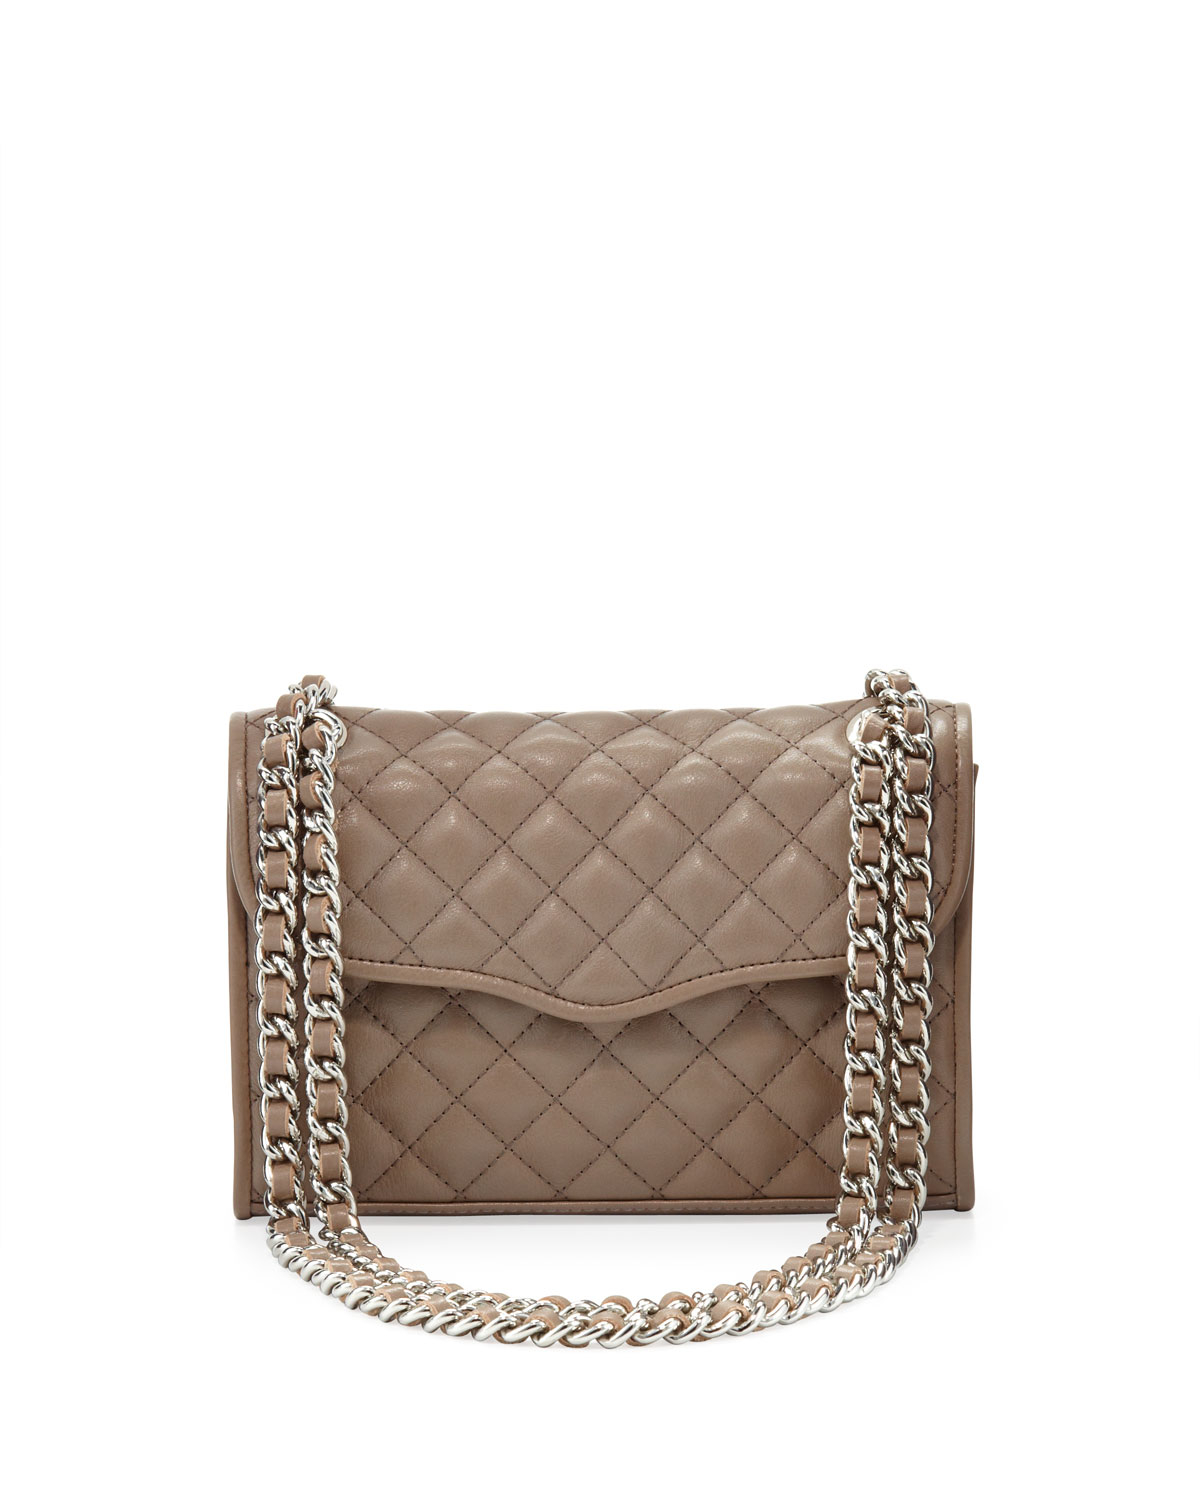 Rebecca minkoff Affair Quilted Mini Shoulder Bag Taupe in Brown | Lyst